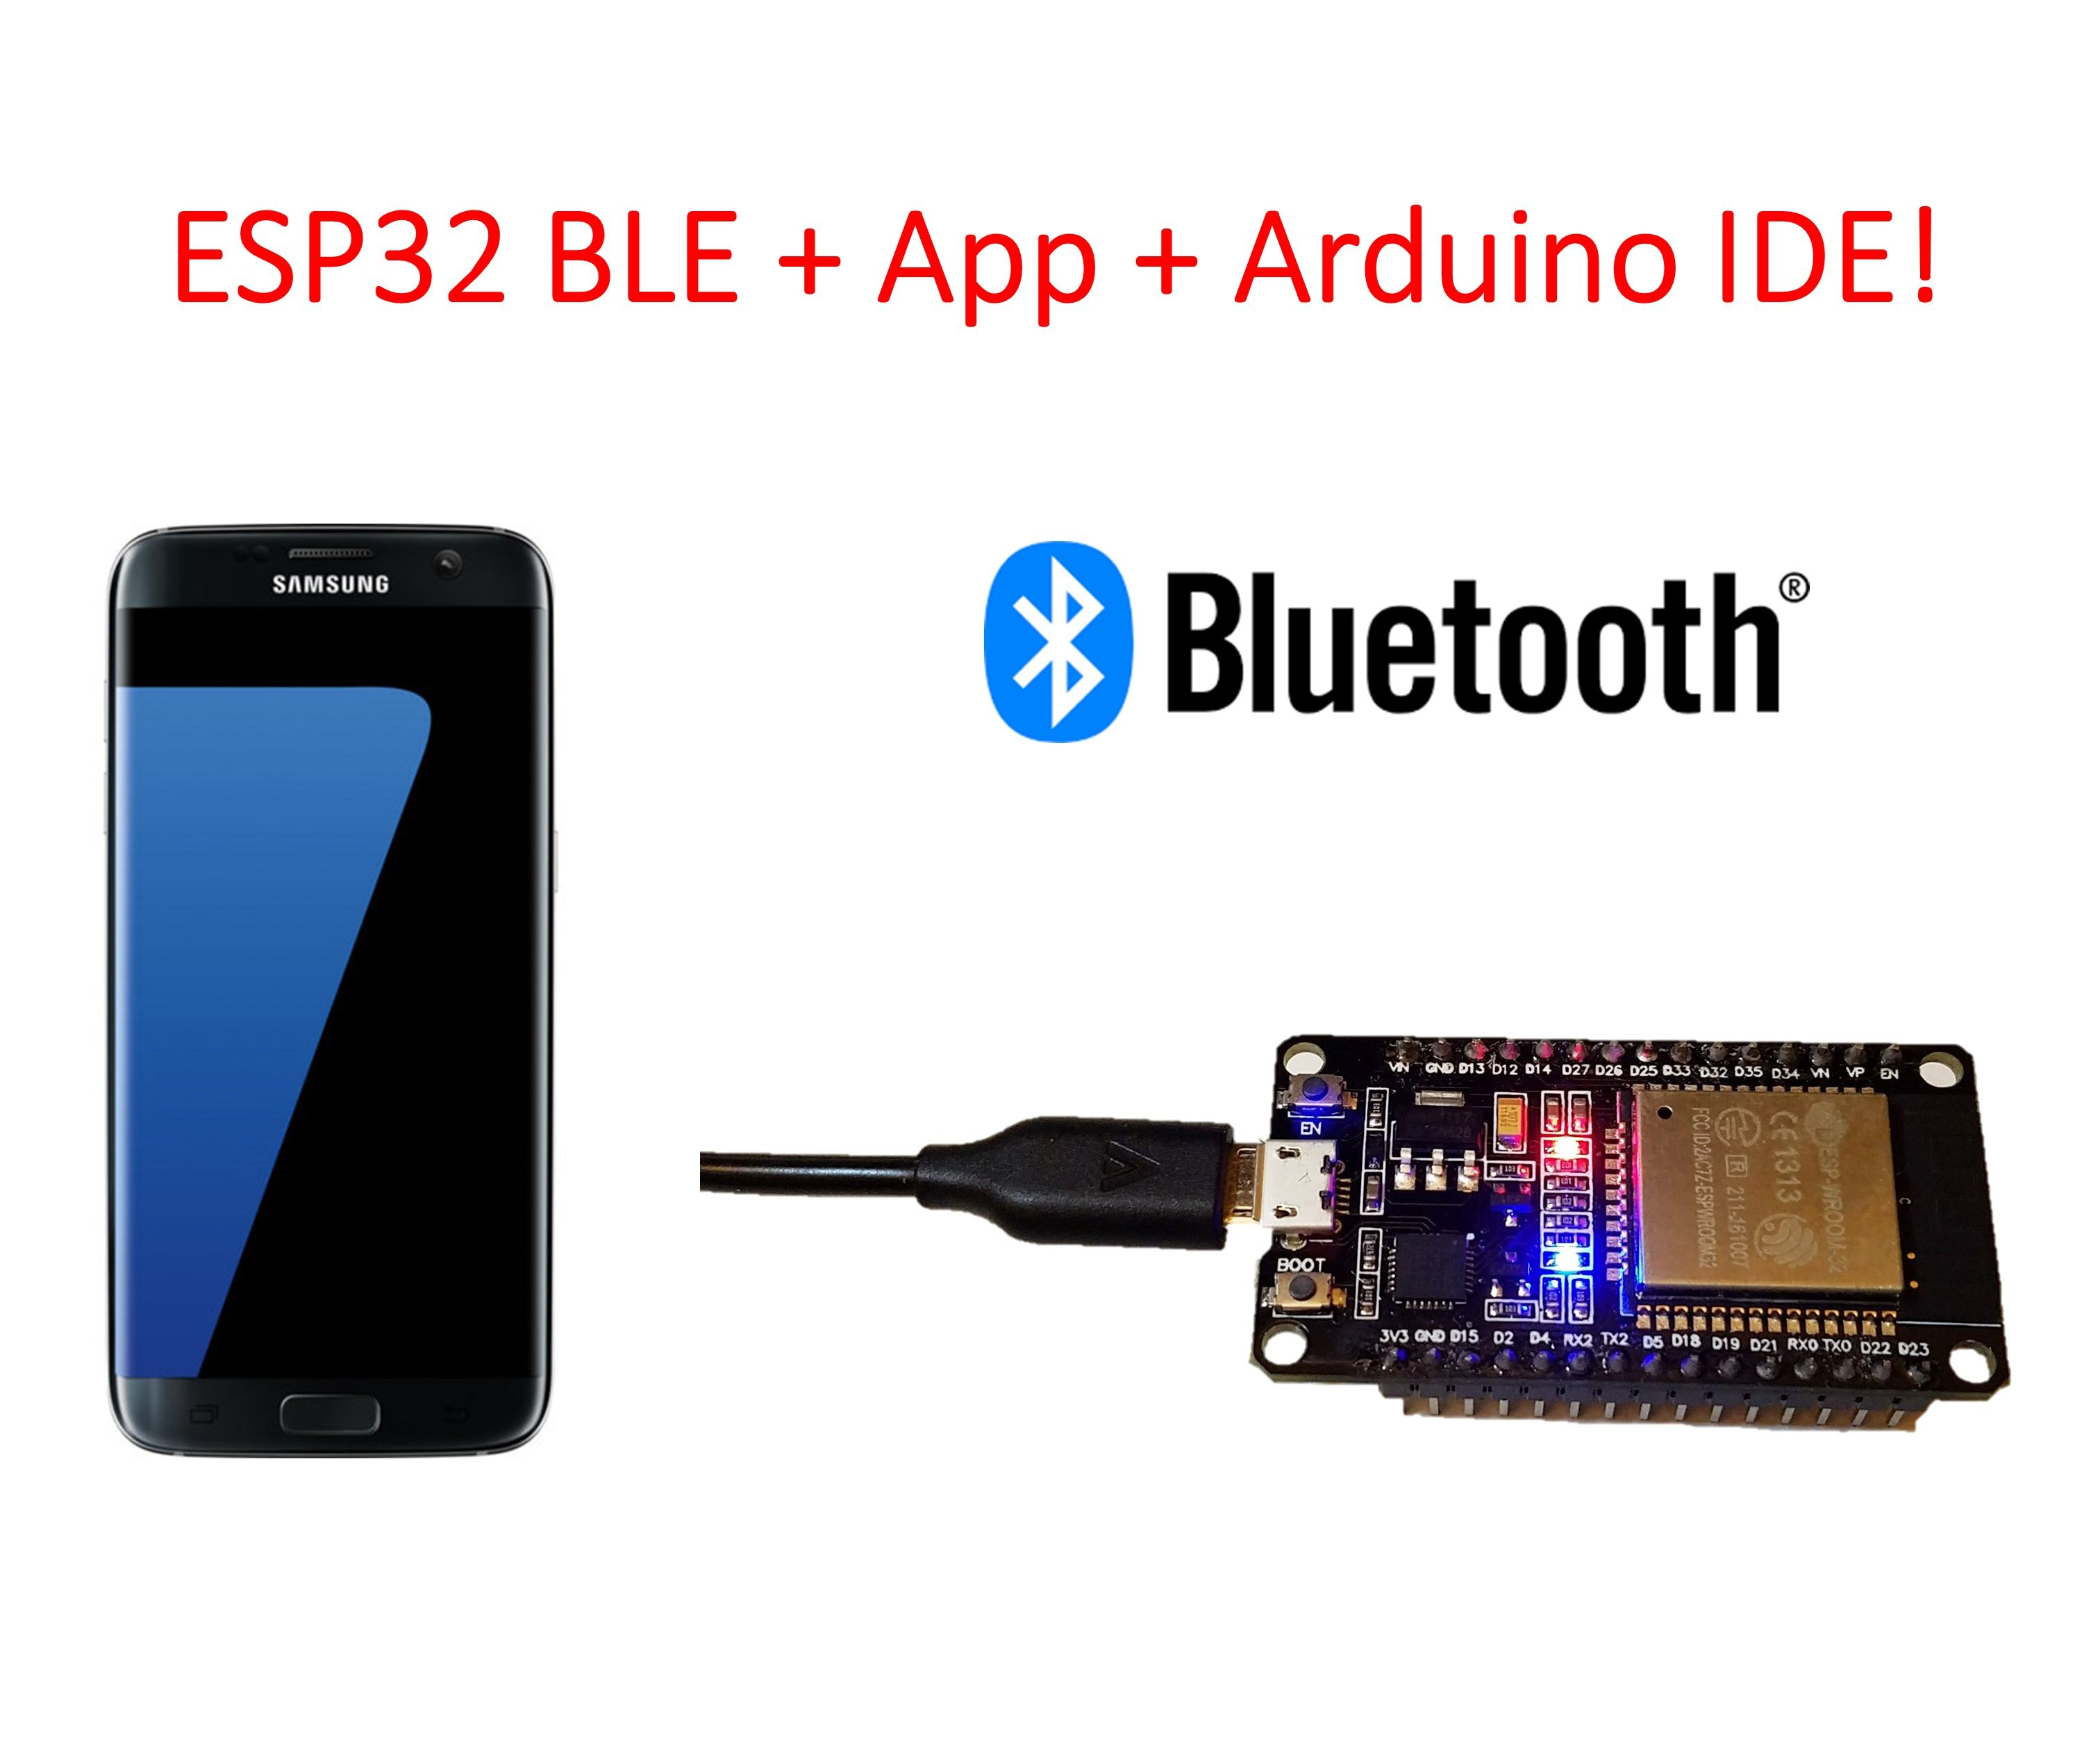 ESP32 BLE + Android App + Arduino IDE = AWESOME